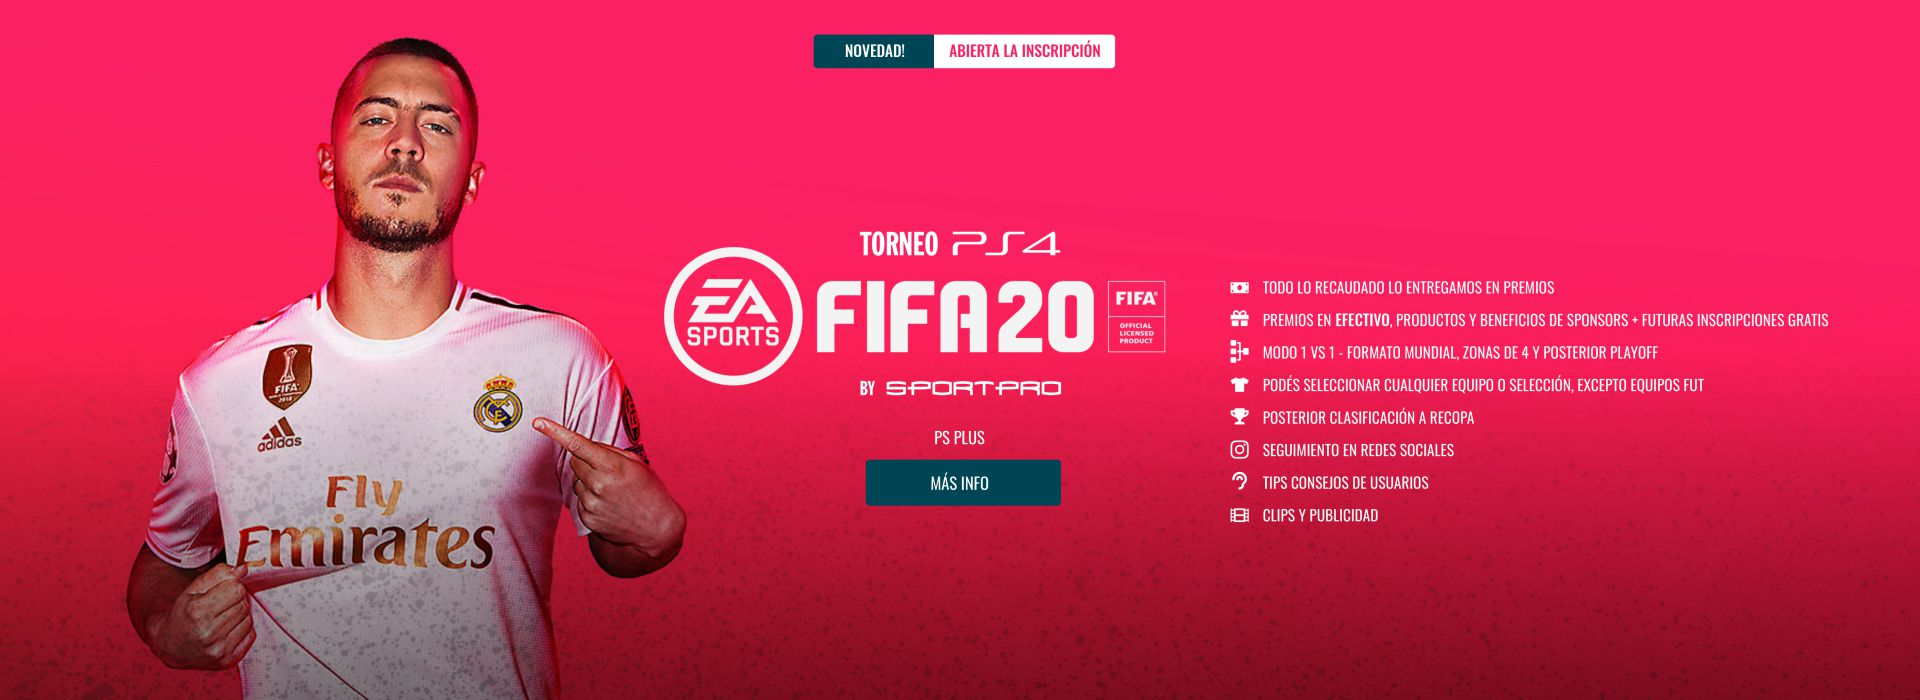 Torneo PS4 FIFA 20